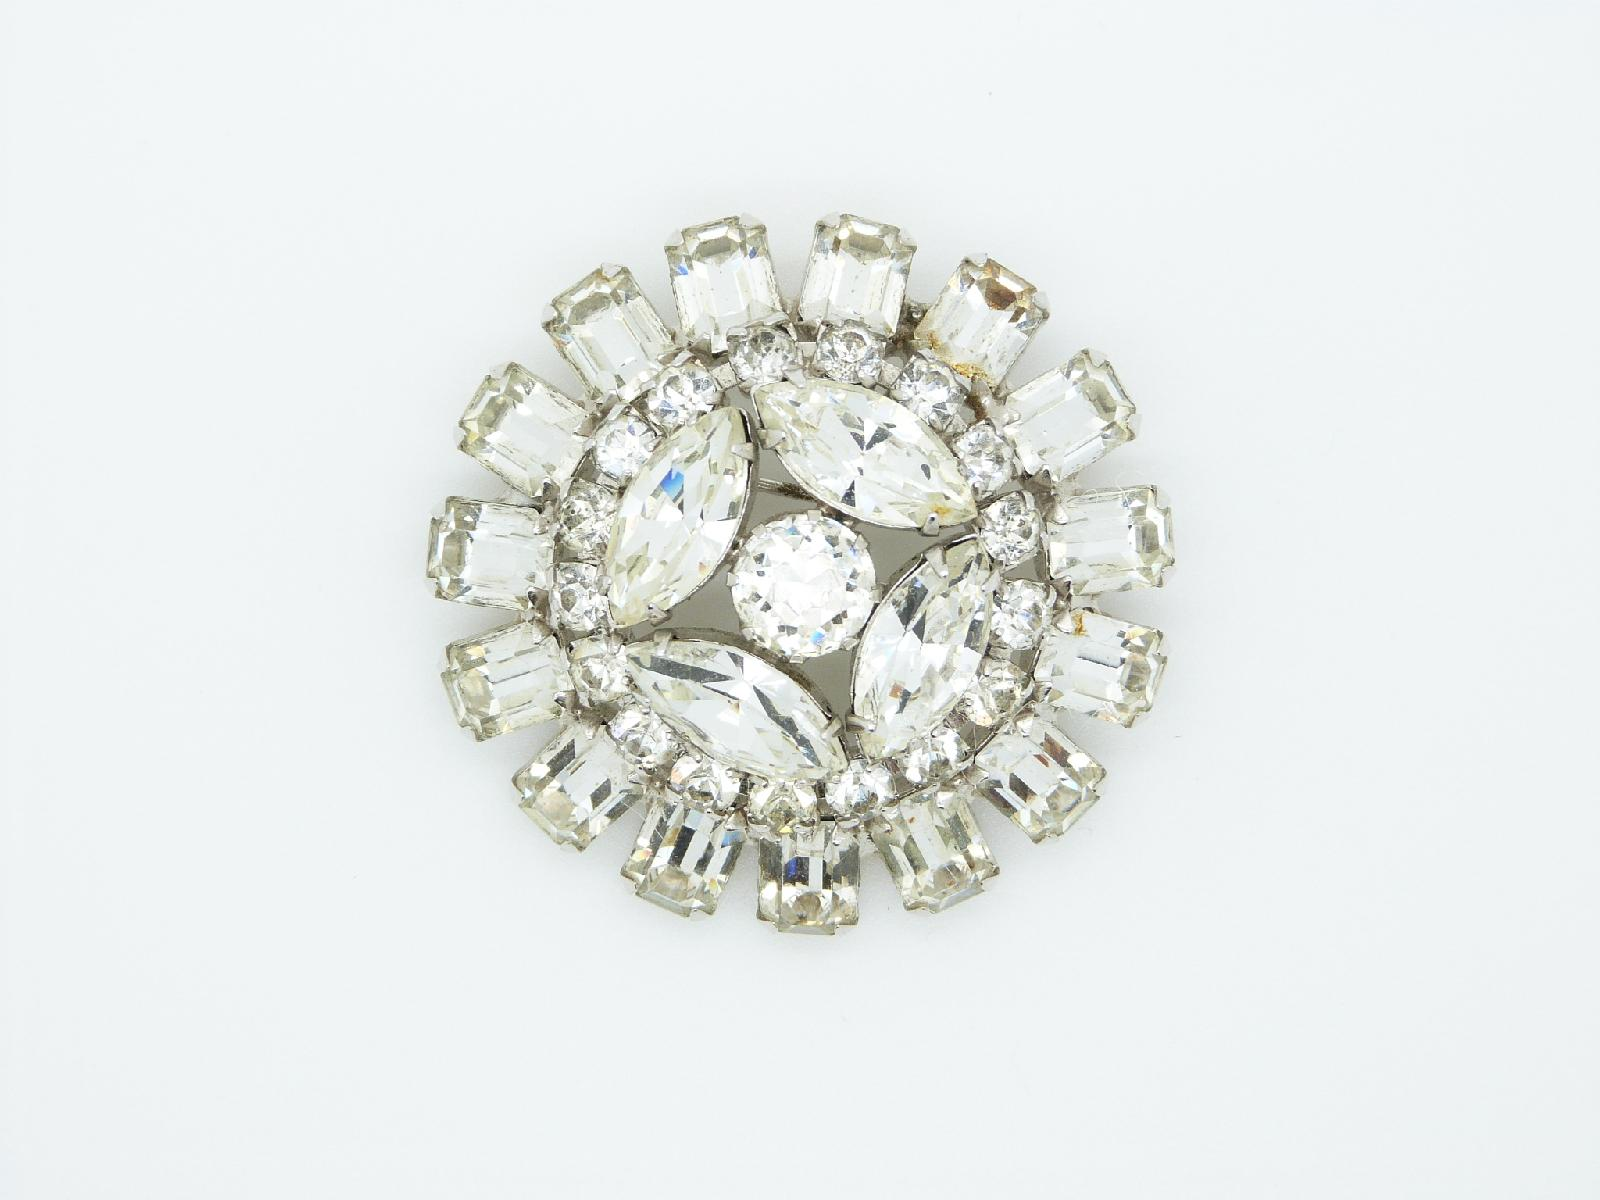 Vintage 50s Signed Weiss Large Sparkling Diamante Domed Silvertone Brooch